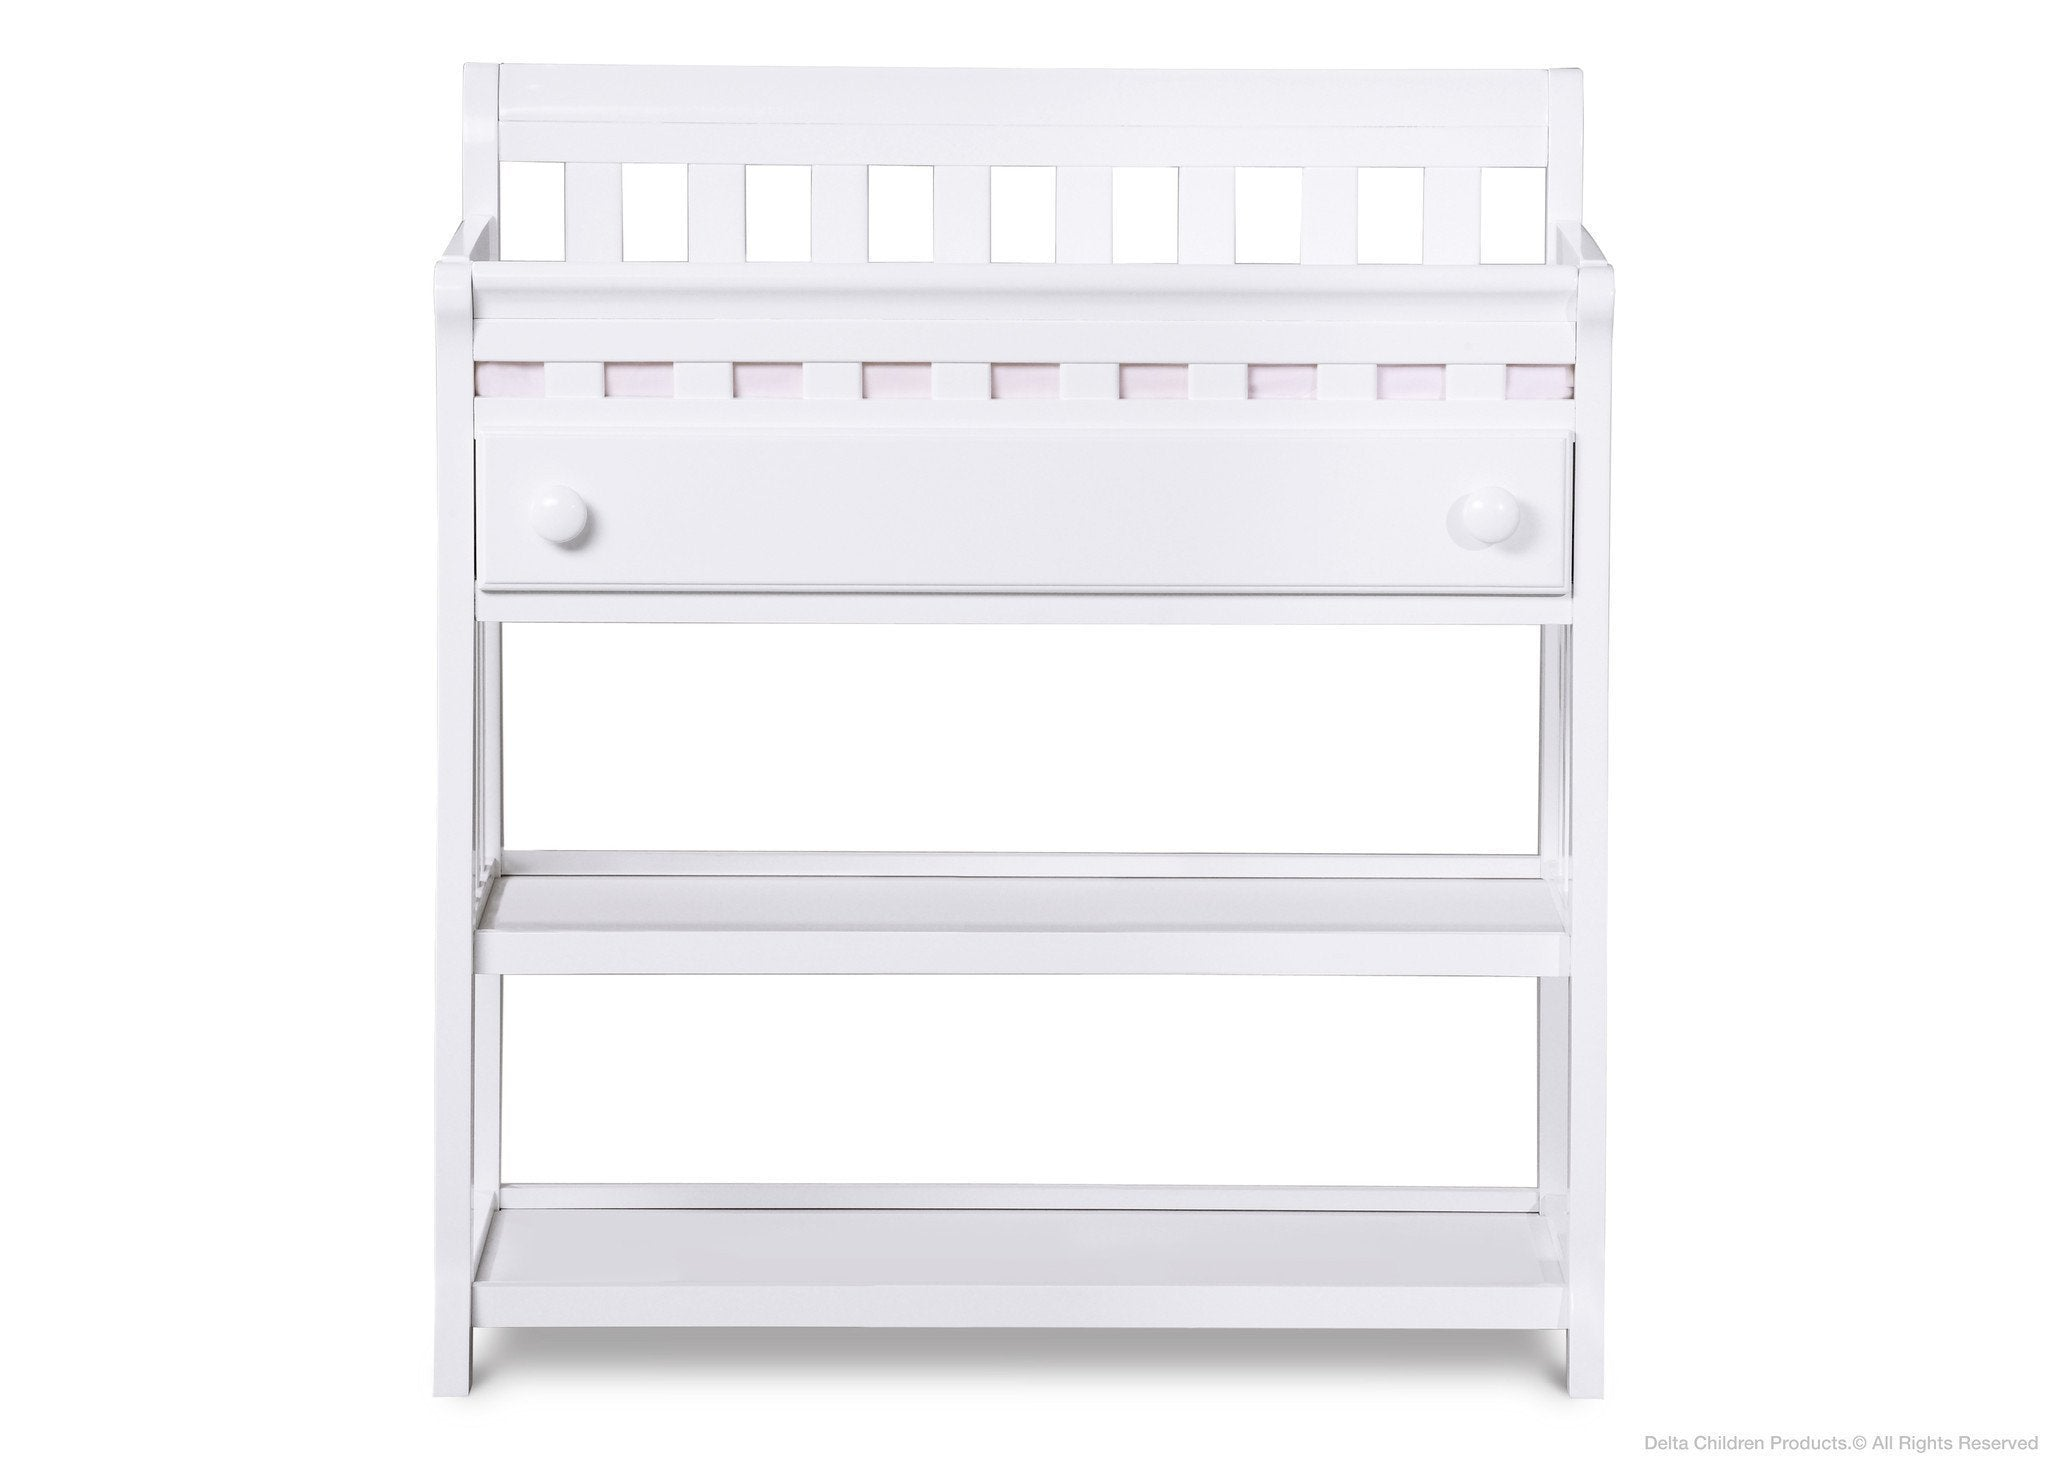 Delta Children White (100) Solutions Changing Table Front View a1a